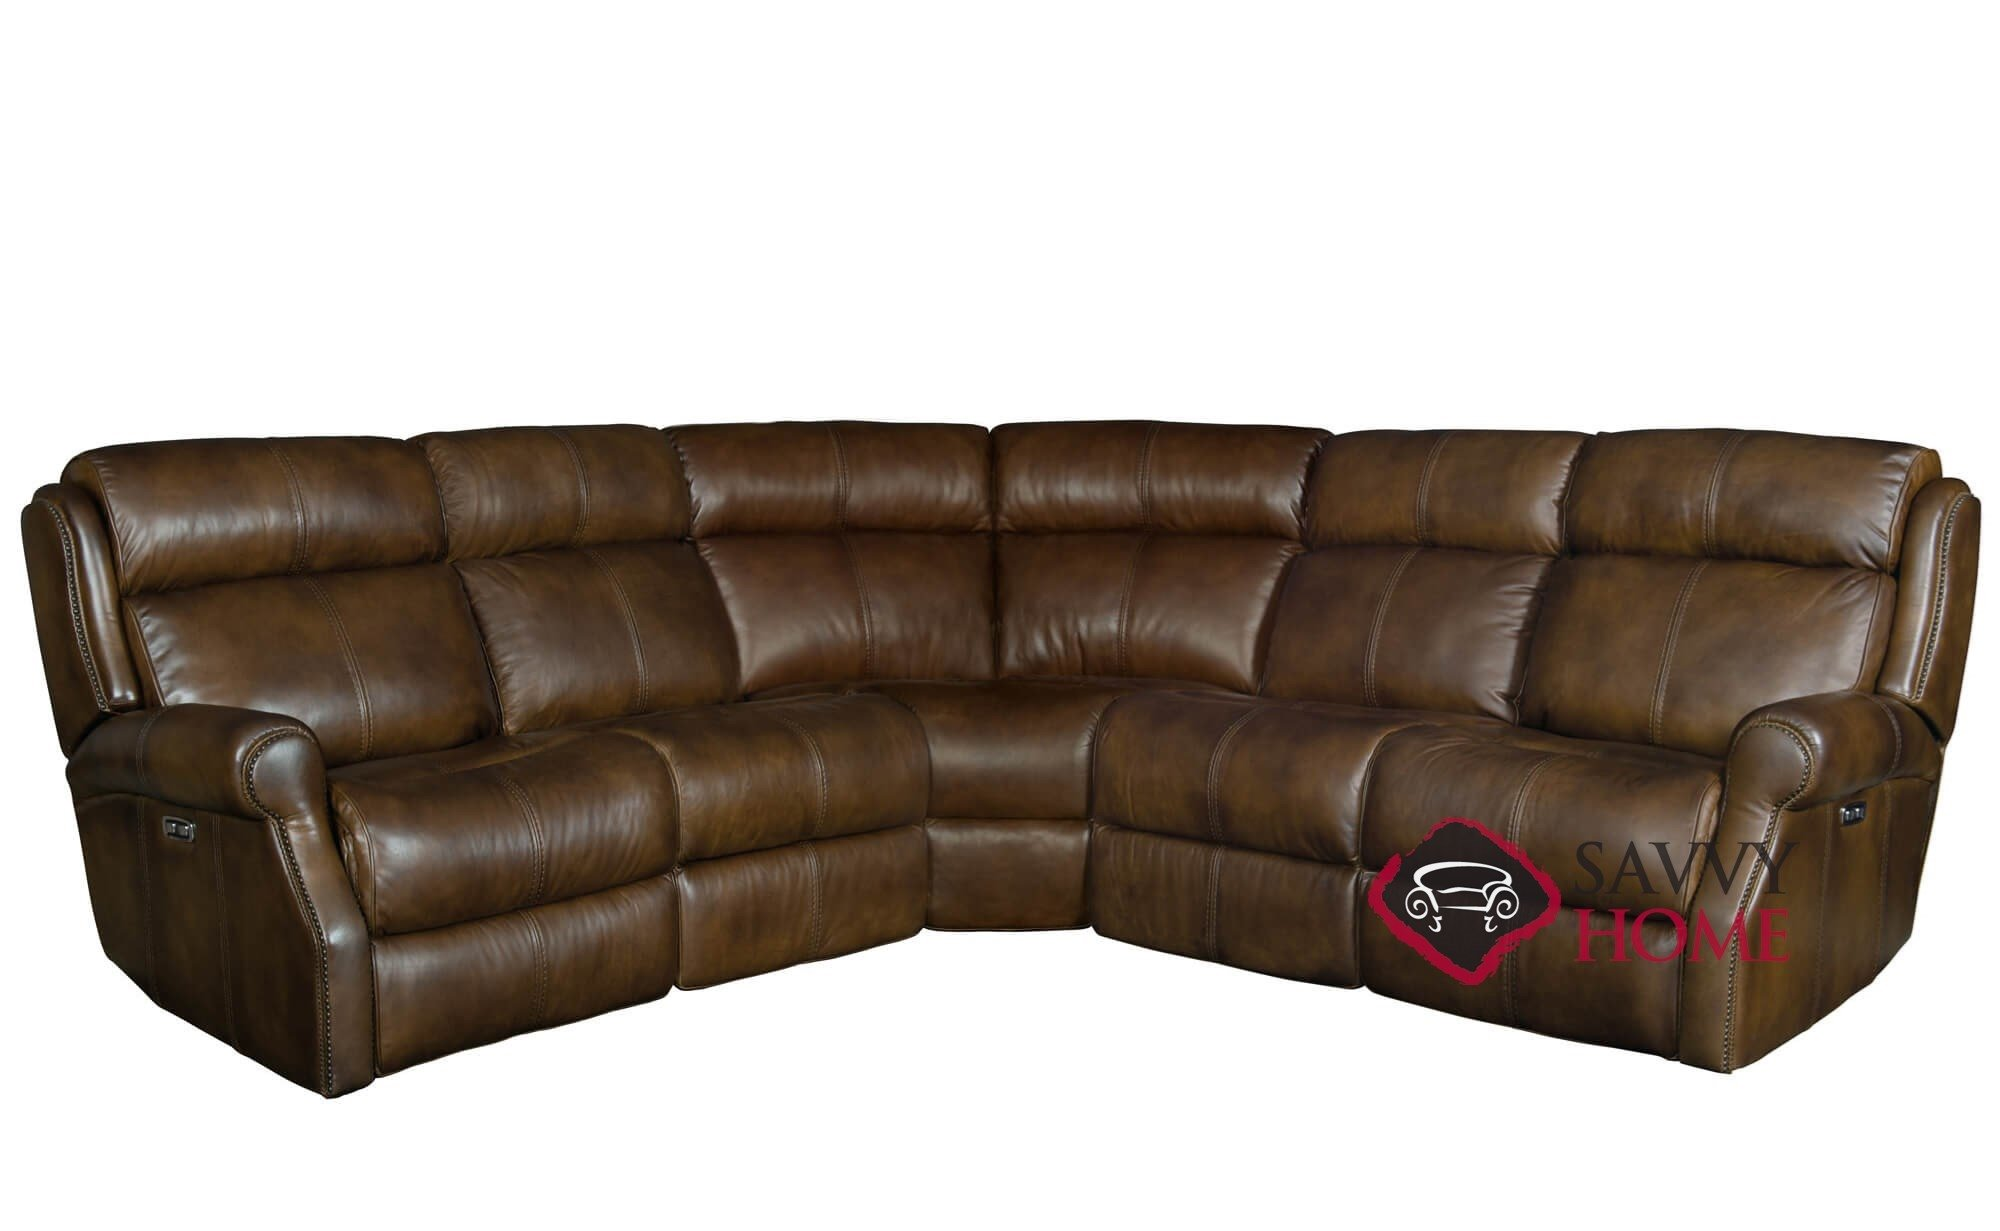 Mcgwire Reclining Leather True Sectional Sofa With Down Blend Cushions By Bernhardt In 232 202